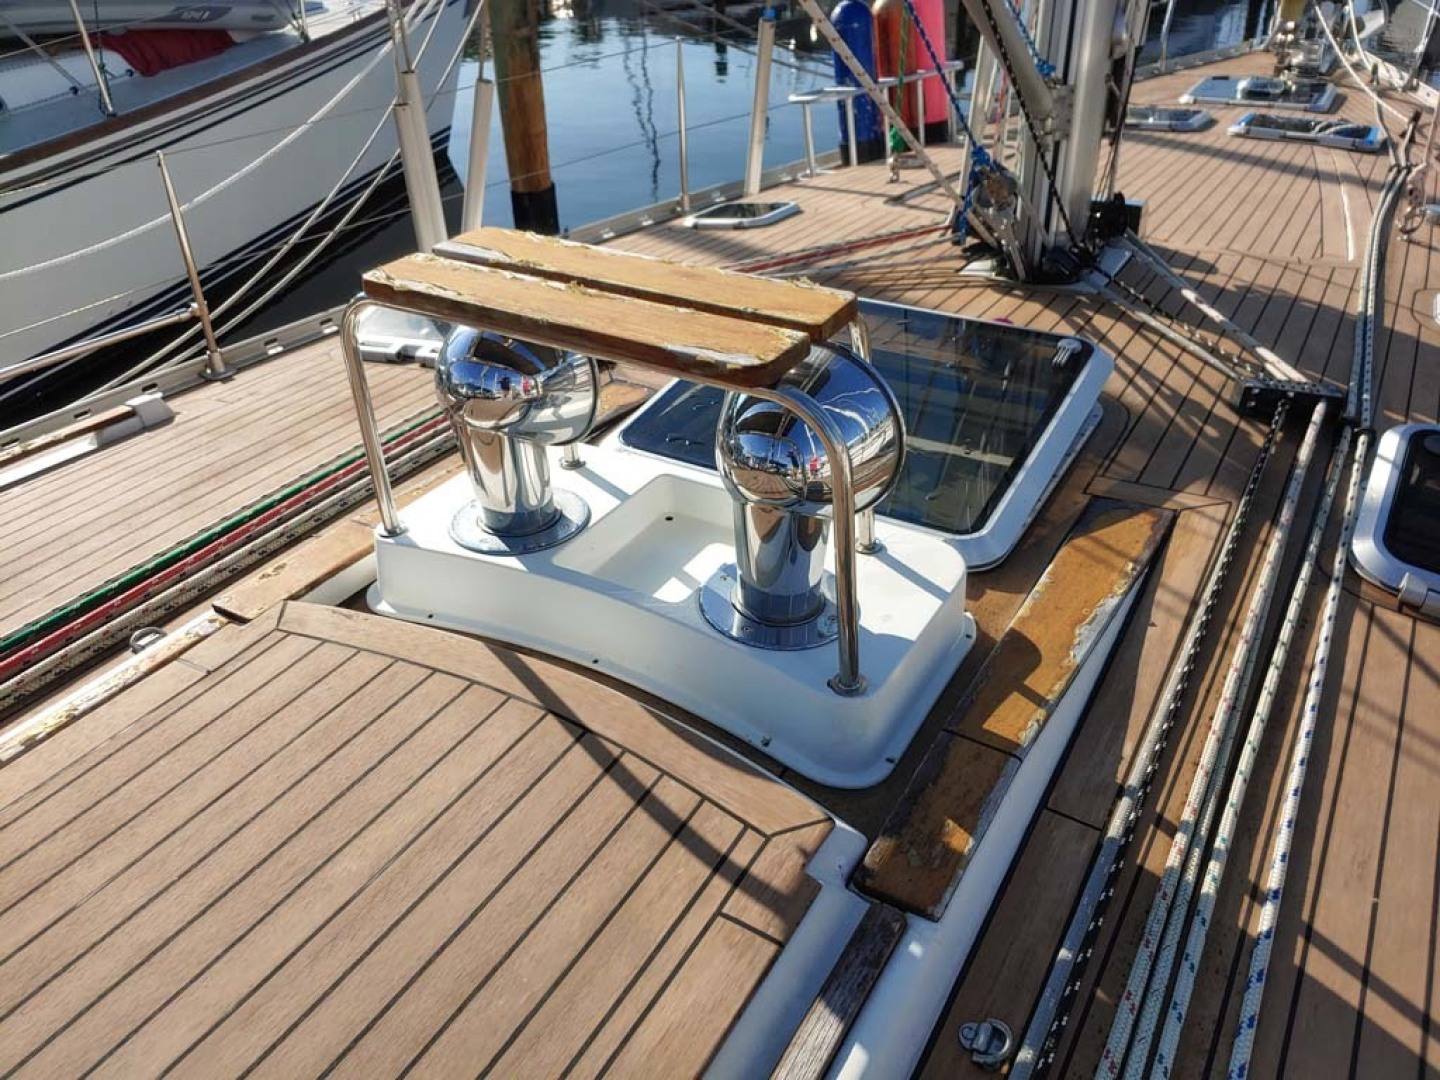 Jeanneau-Sun Odyssey 52.2 2001-Perseverance Hollywood-Florida-United States-Foredeck-1631441 | Thumbnail